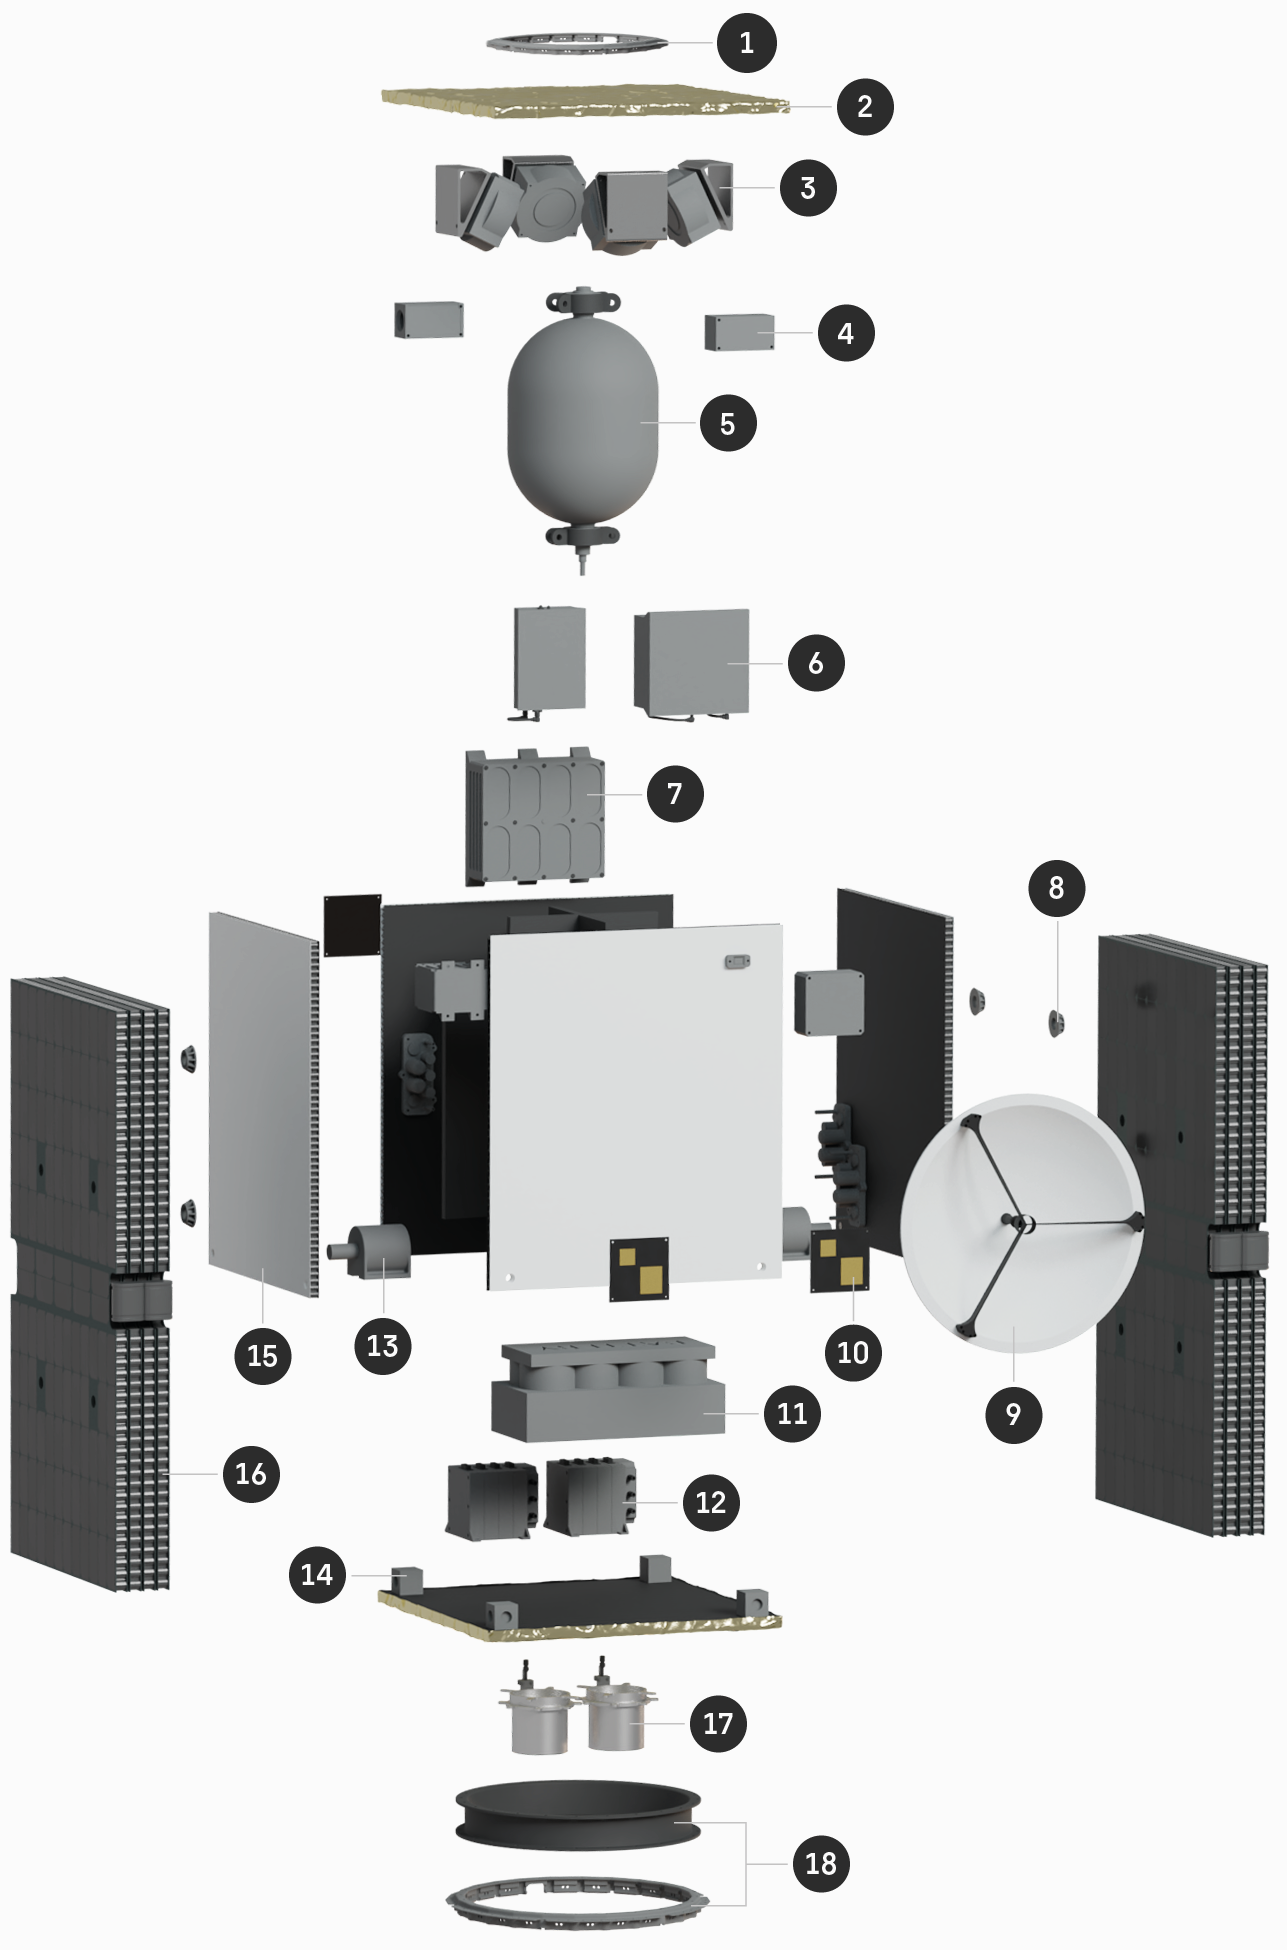 An exploding render of all main subsystems of the ESKIMO satellite, depicting the accommodation and size of certain systems in relation to the whole satellite body.